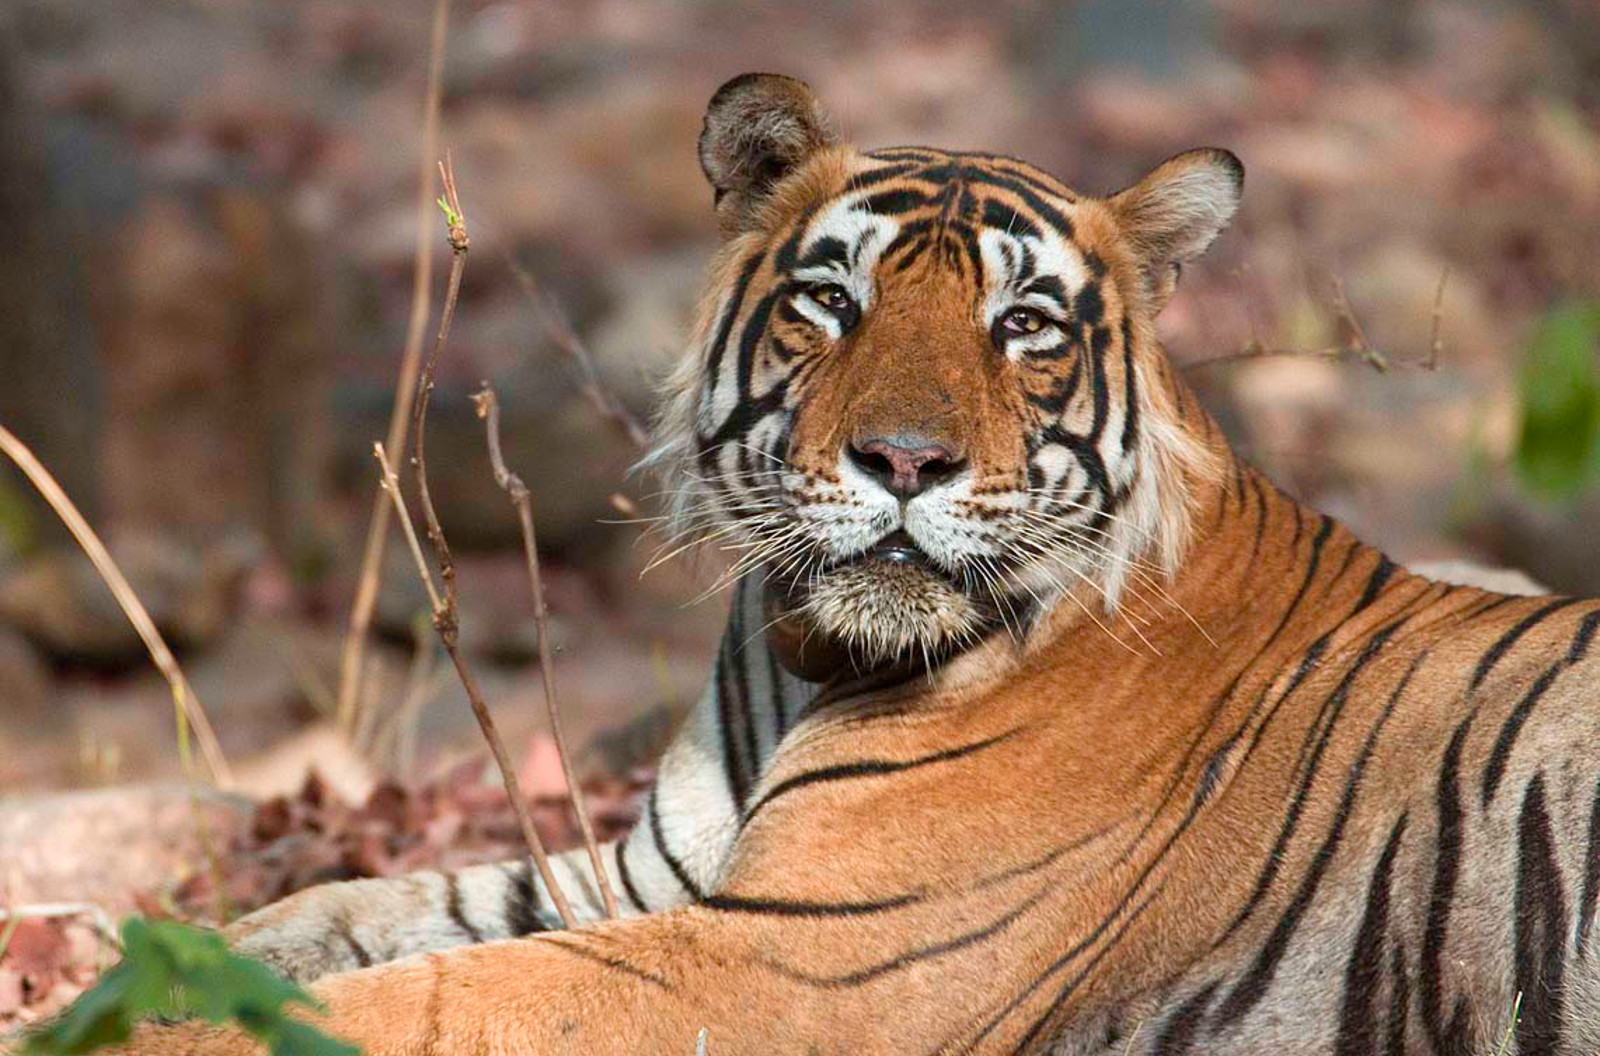 Tigers Set to Remain at Tiger Temple. Here's Why the Fight for Their Freedom is Not Over